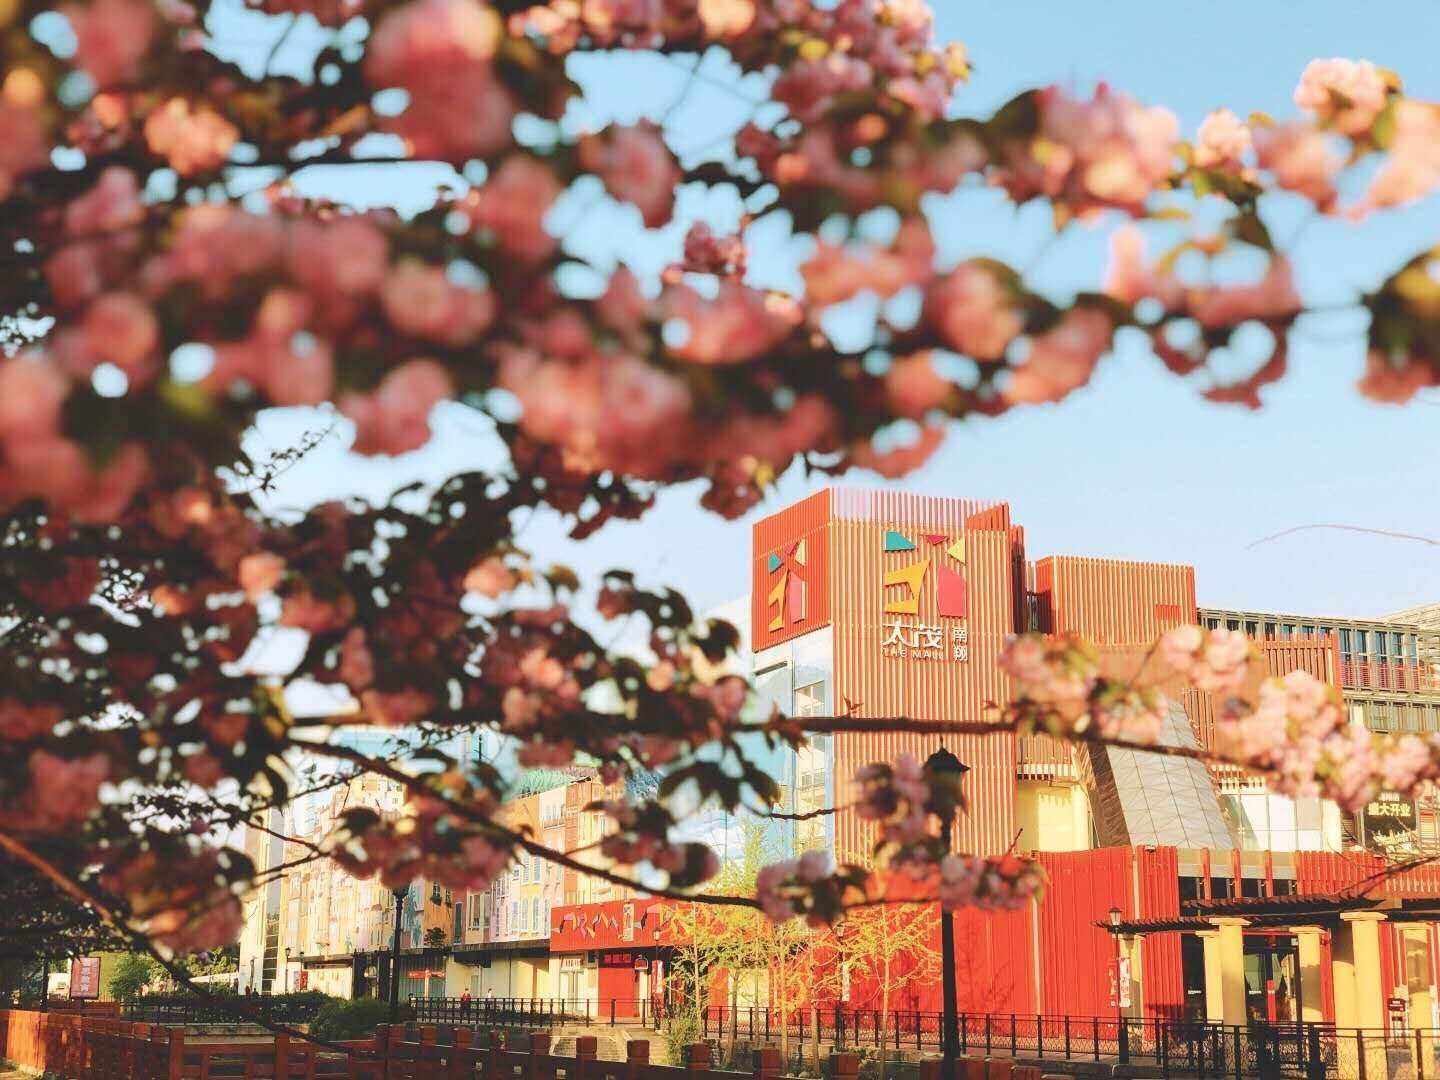 A collection of buildings that are near some trees that have pink flowers on them on a sunny day.